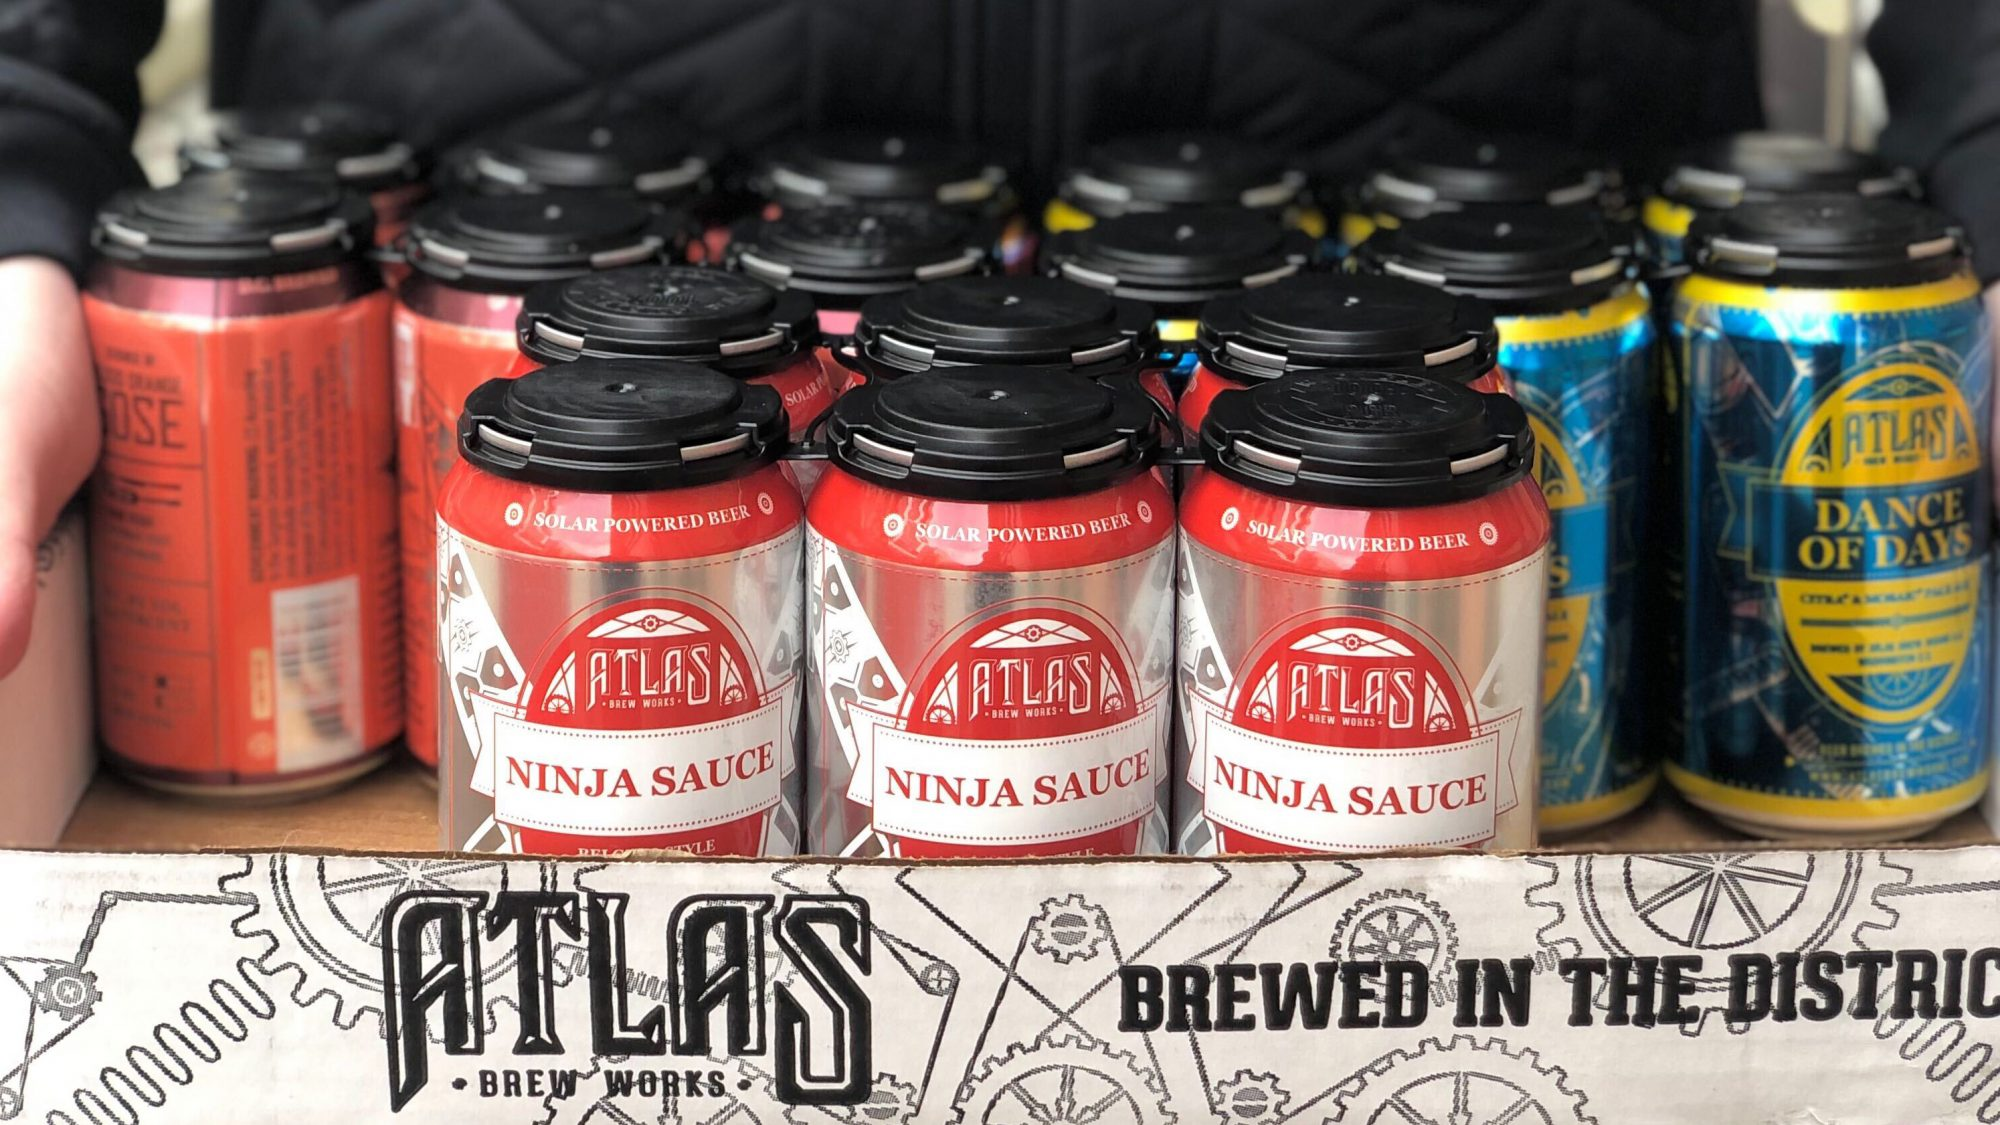 Atlas brews